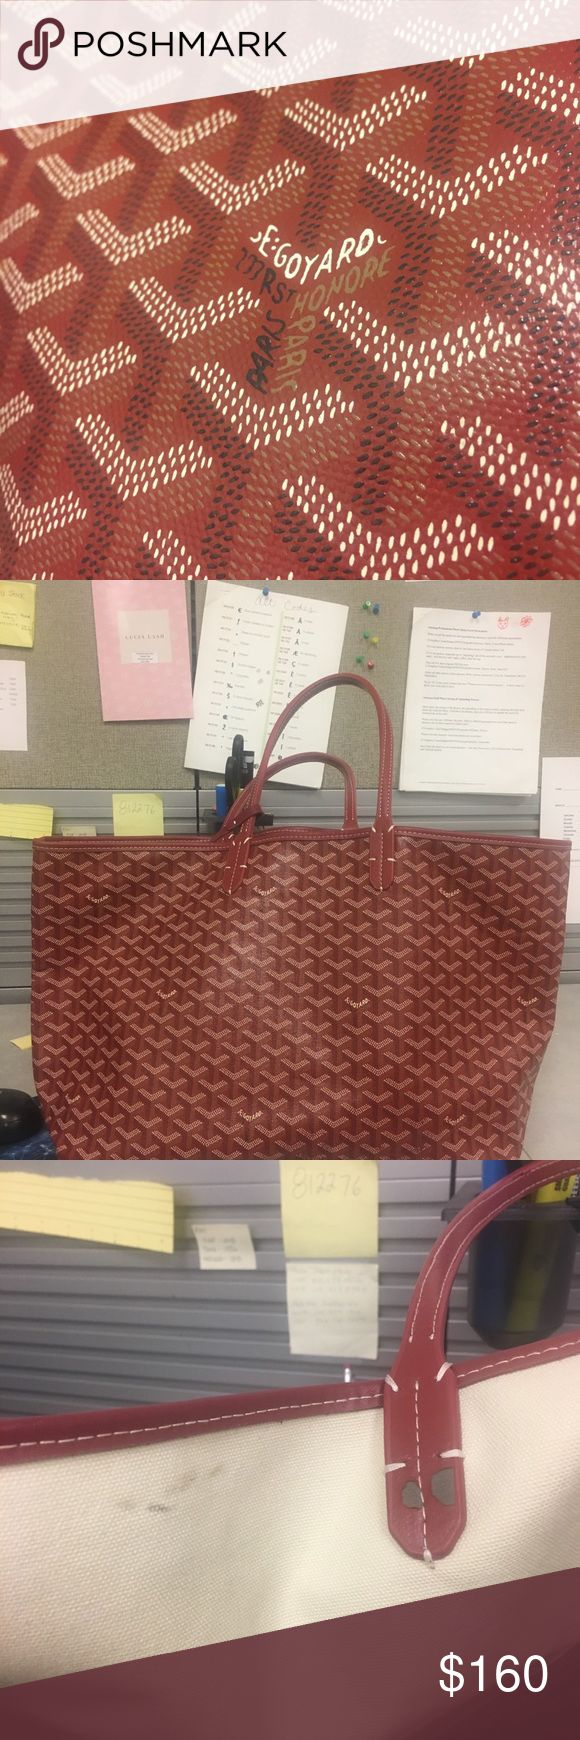 Goyard Tote Price reflects. Great condition and carries everything Bags Totes